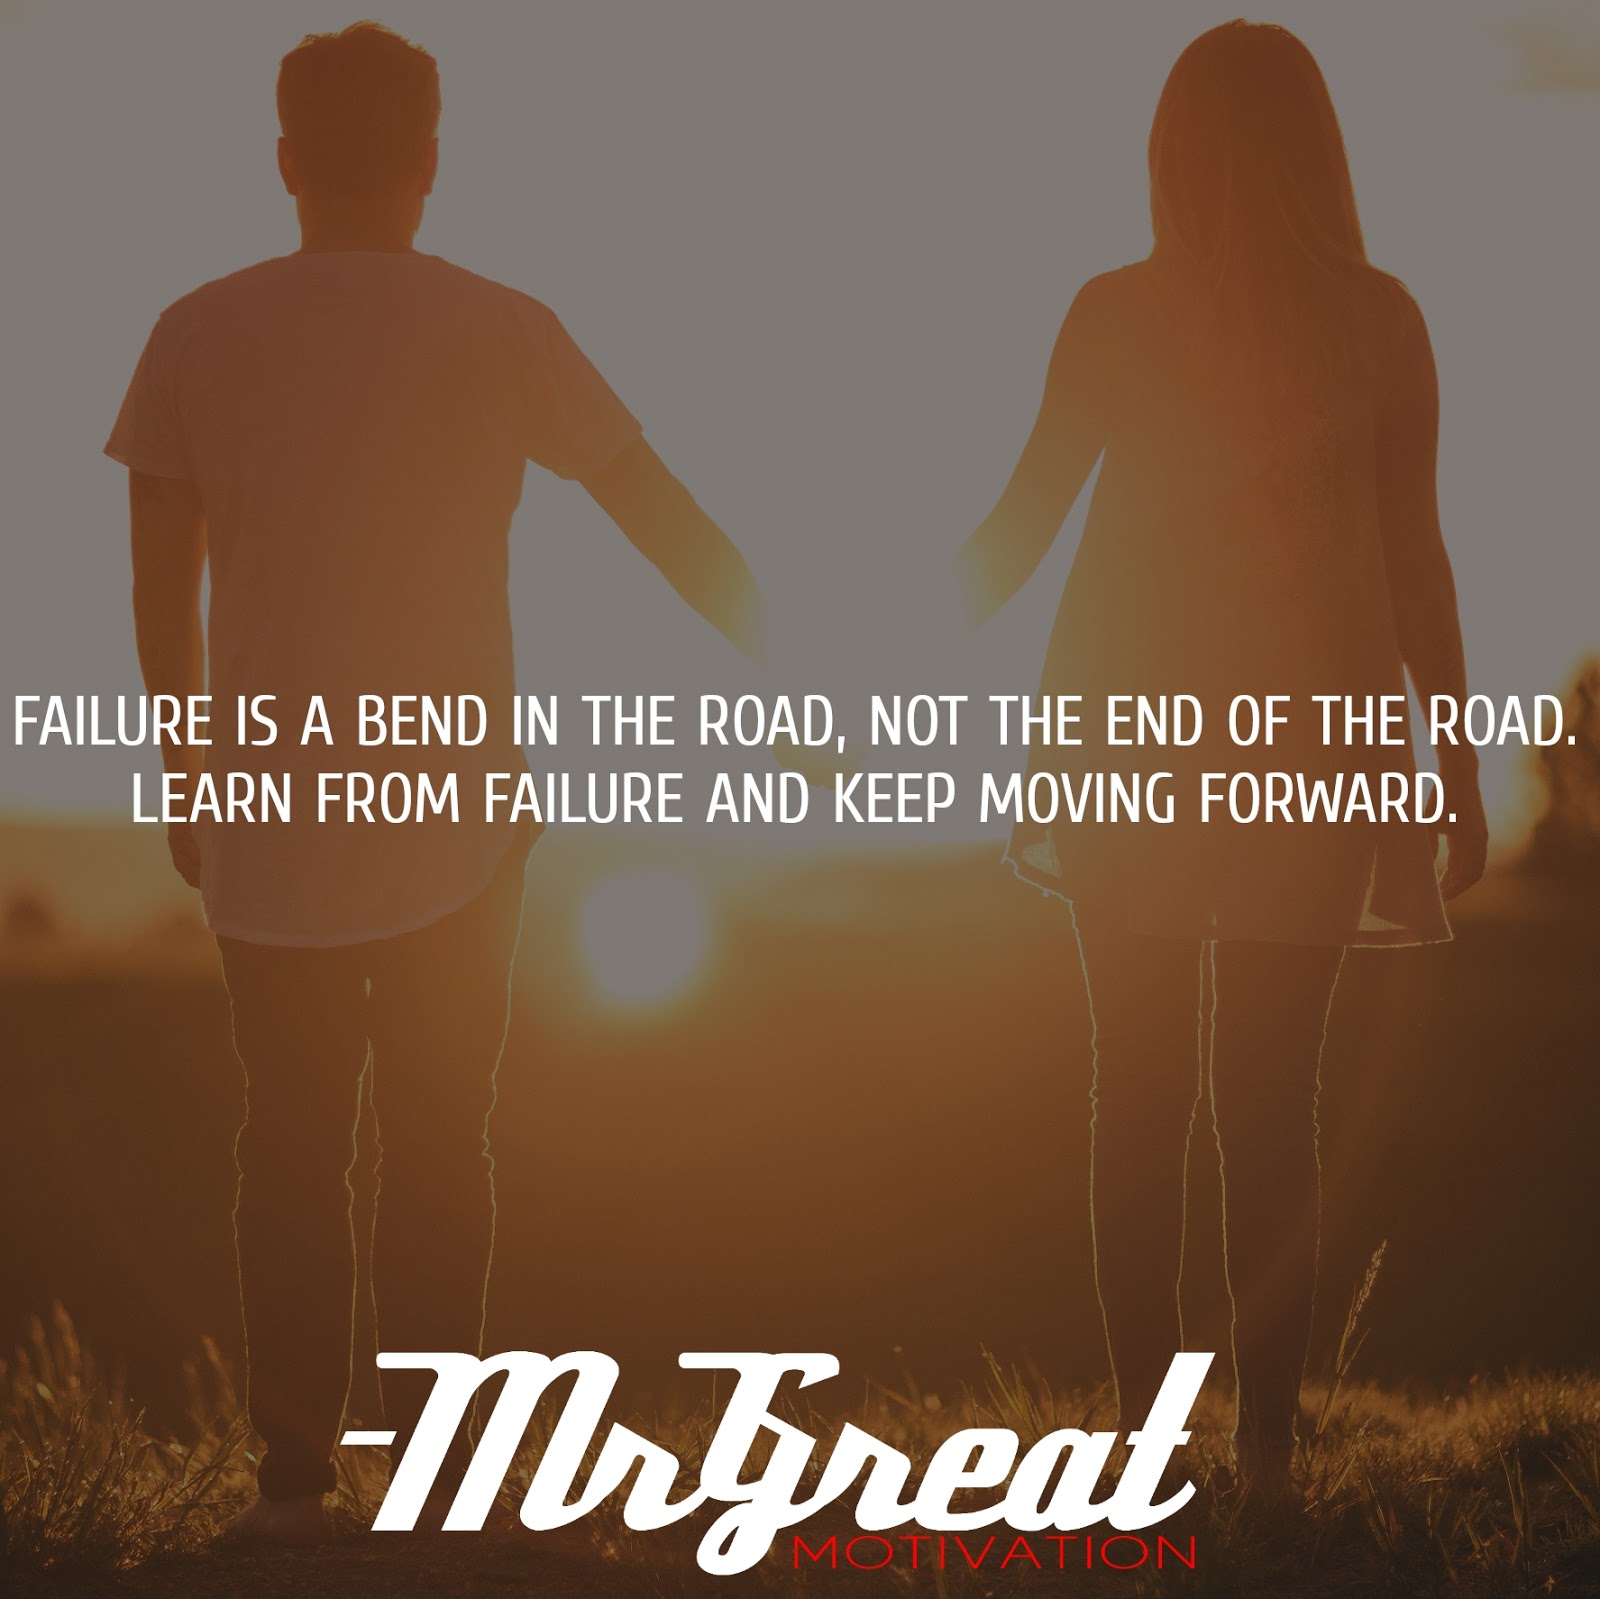 Failure is a bend in the road, not the end of the road. Learn from failure and keep moving forward -Roy T. Bennett